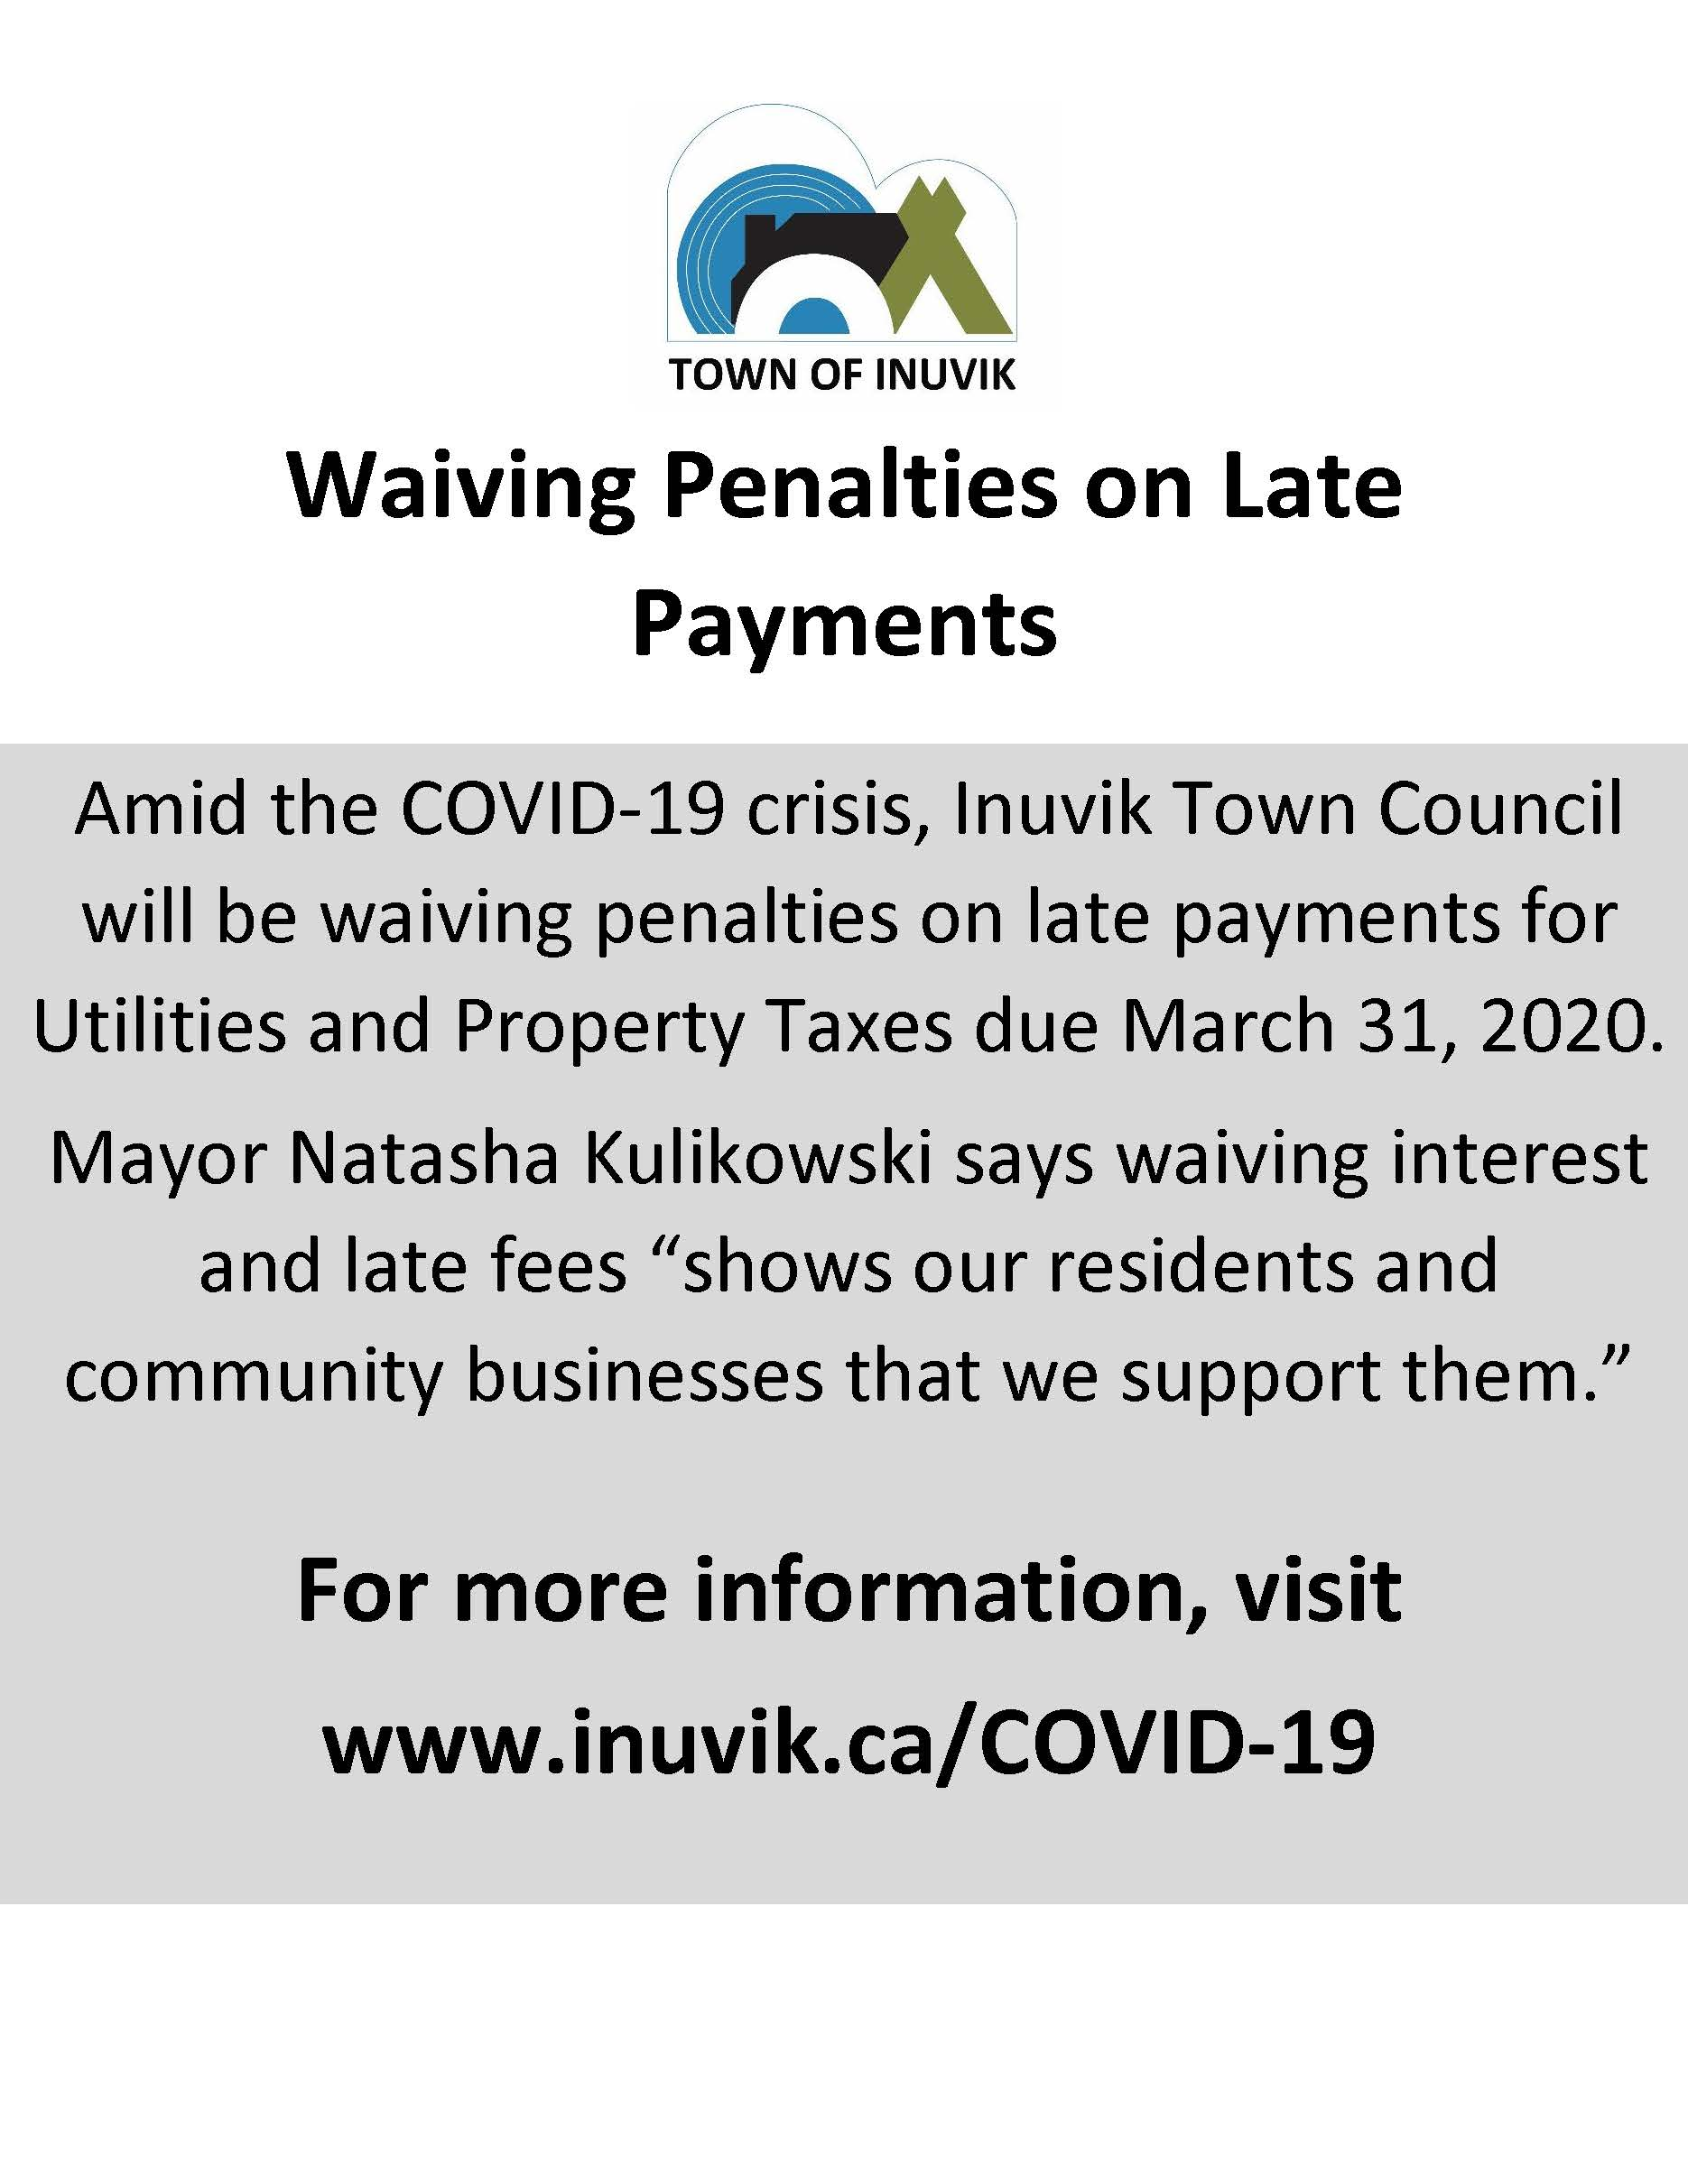 Mar 30 - Late Fee and Interest Waiver